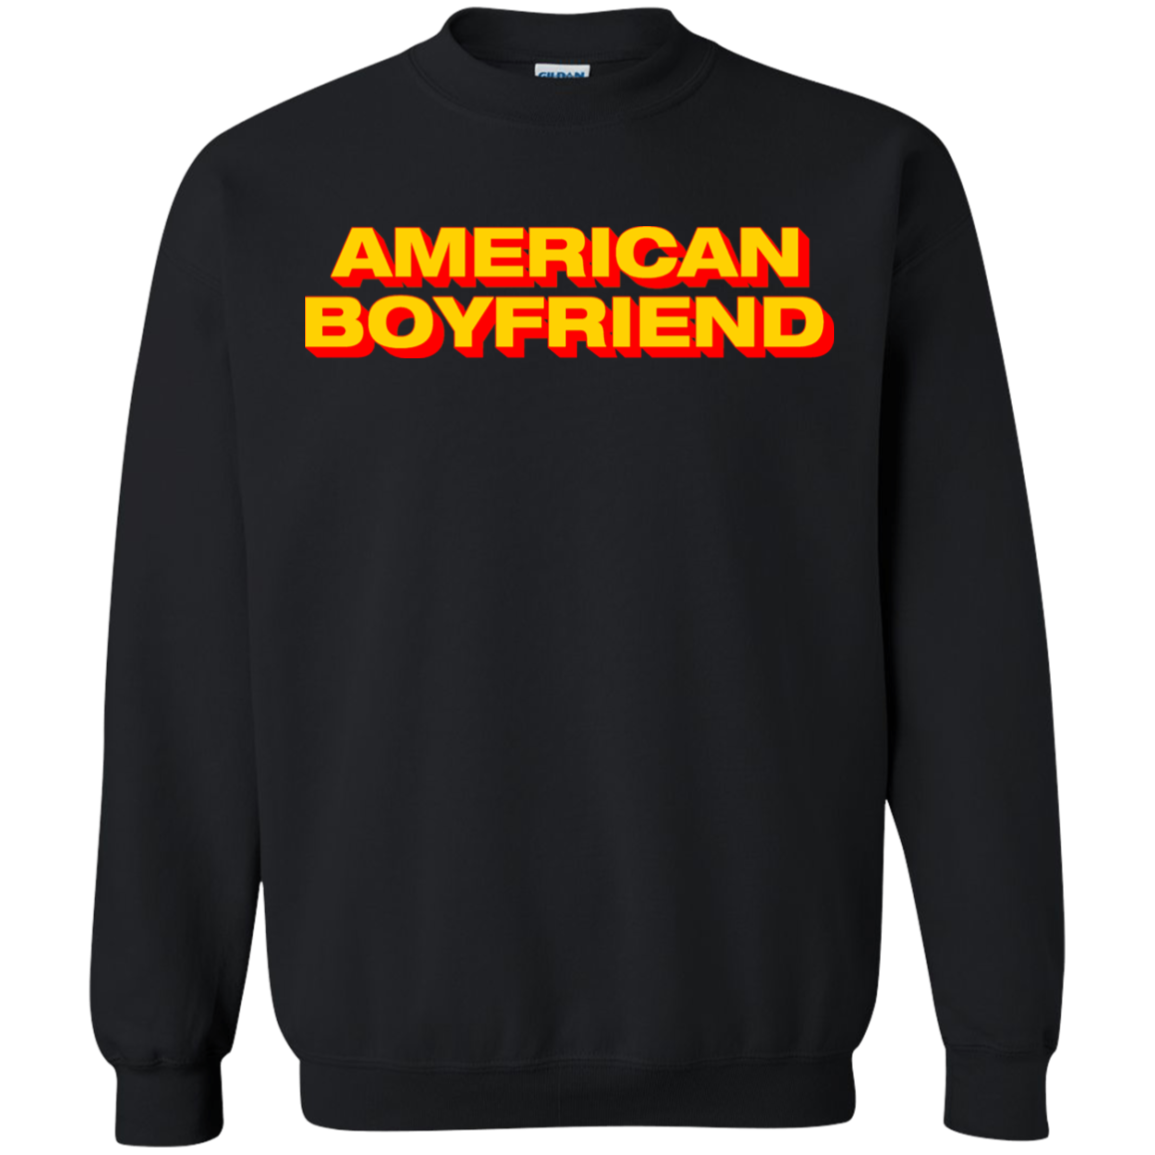 American Boyfriend Sweater